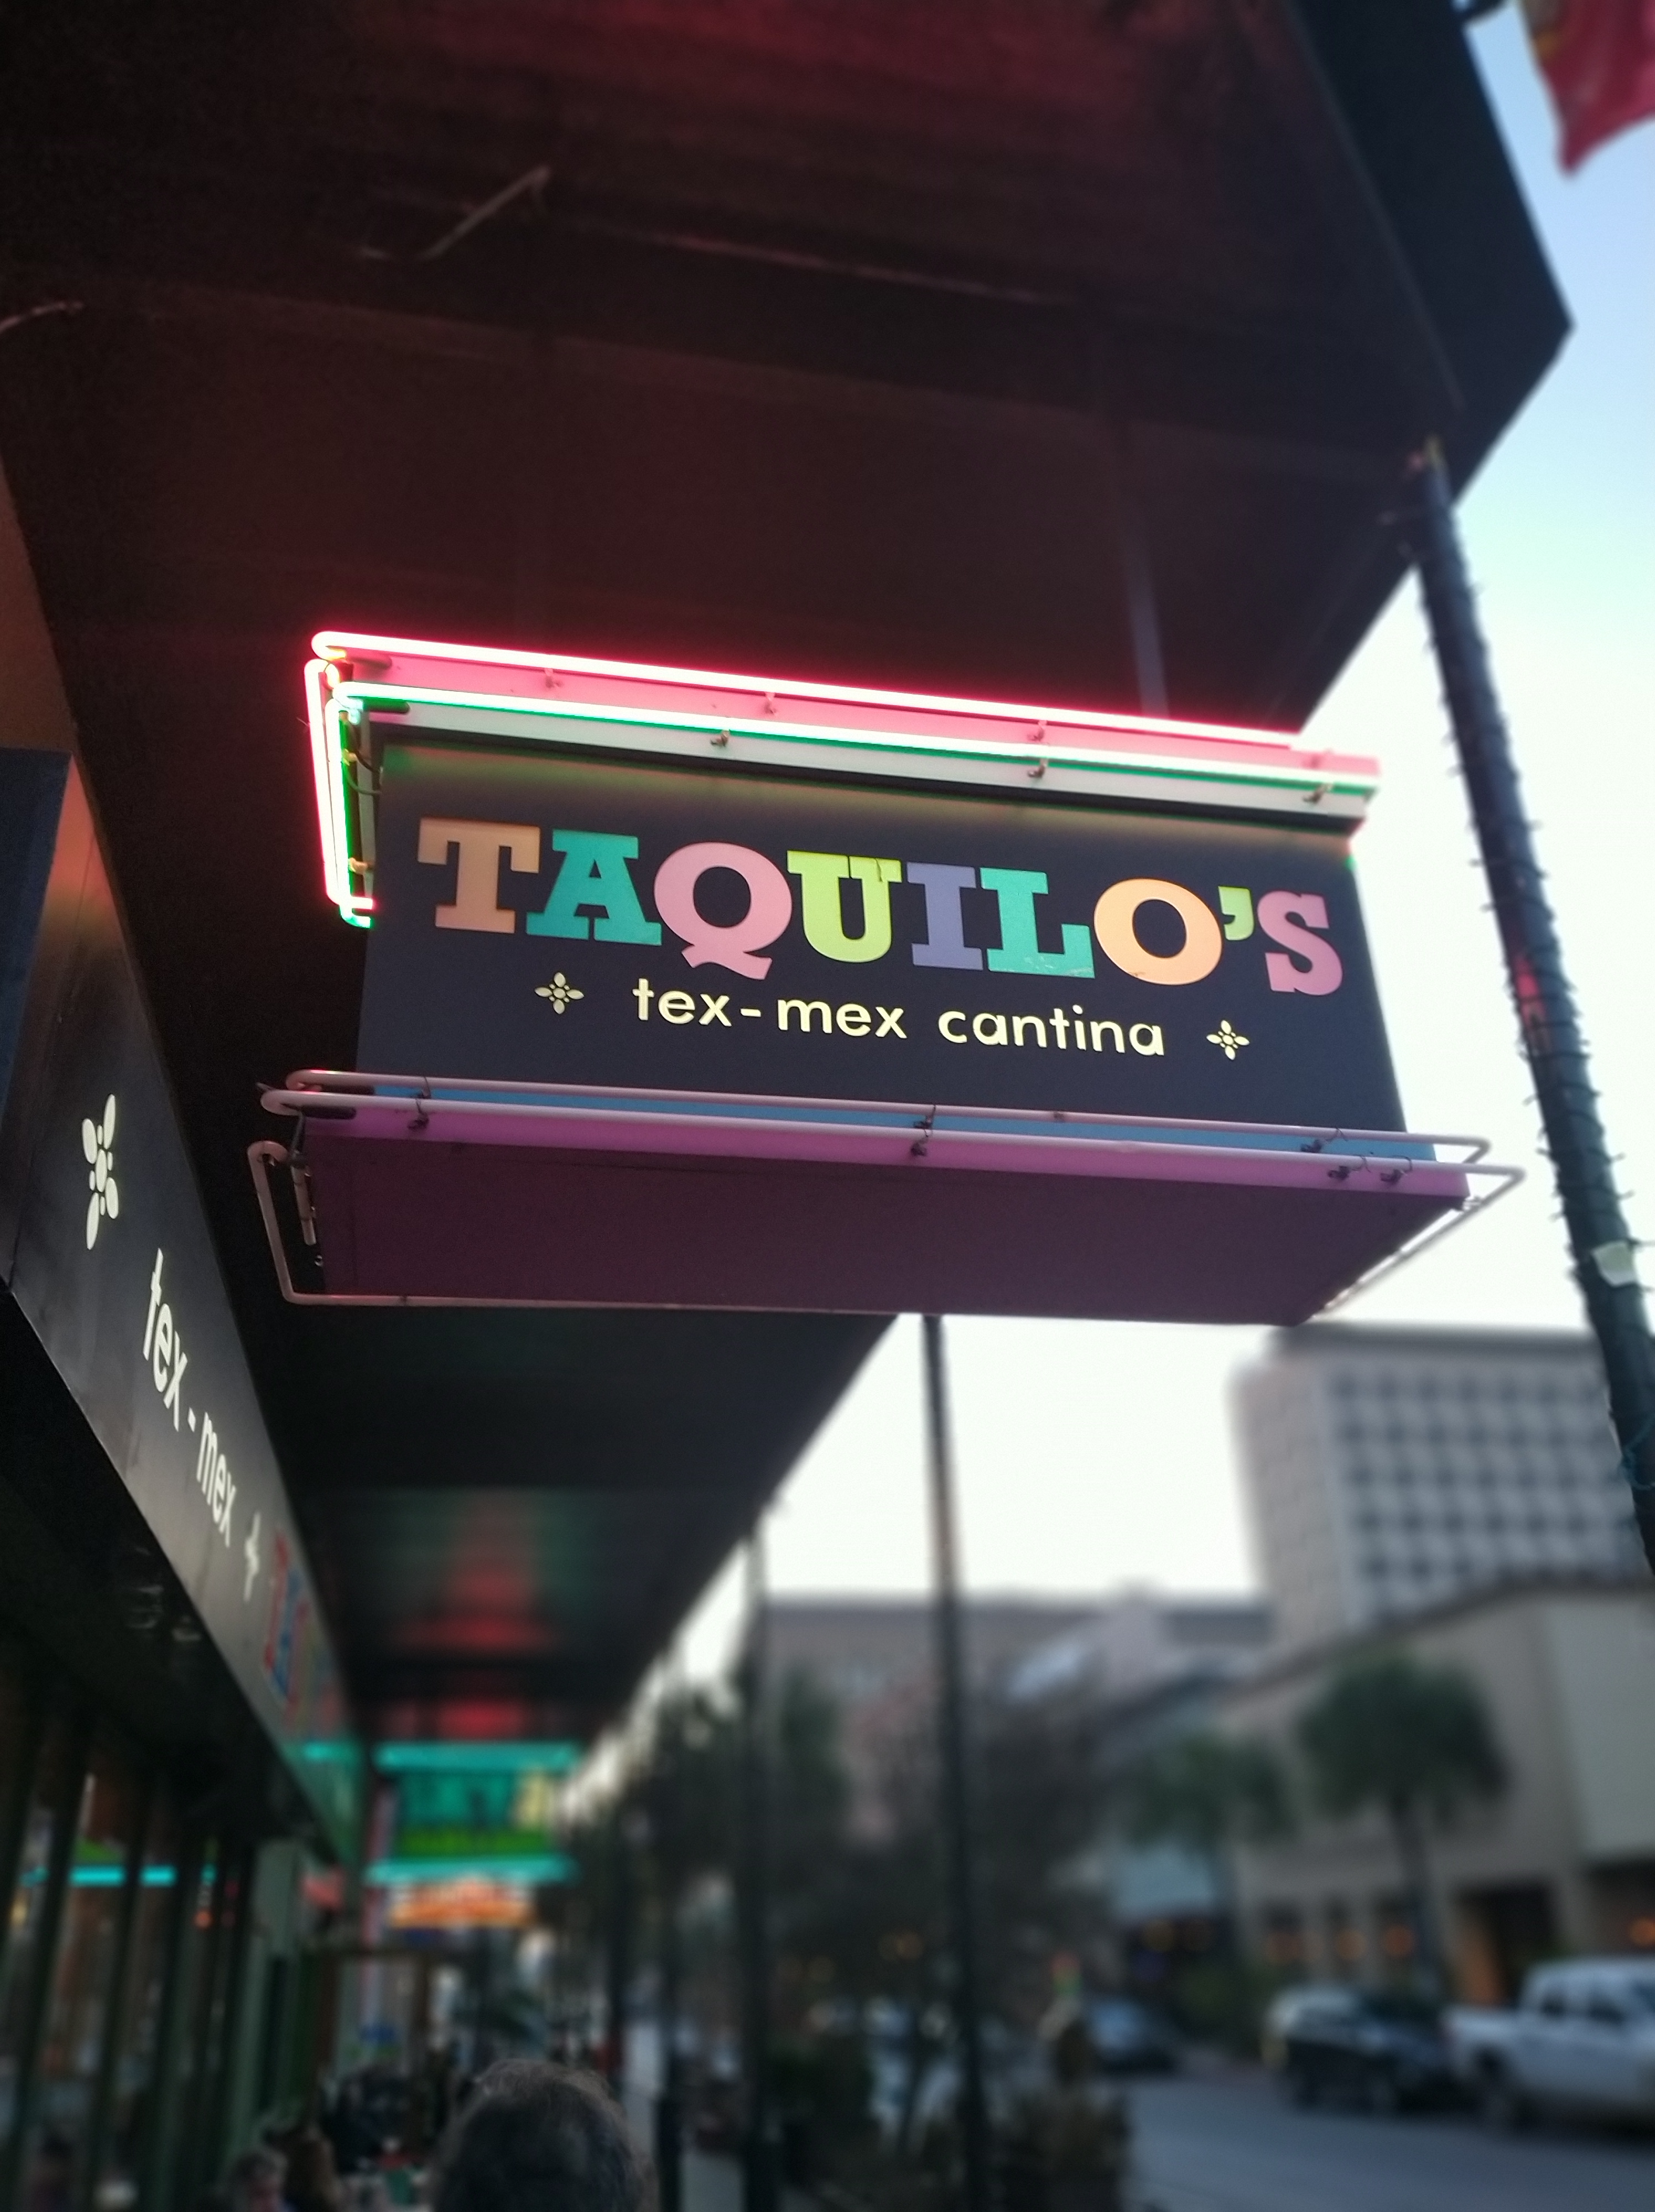 Neon-sign-for-taquillos-texmex-cantina-in-galveston-texas-at-sunset